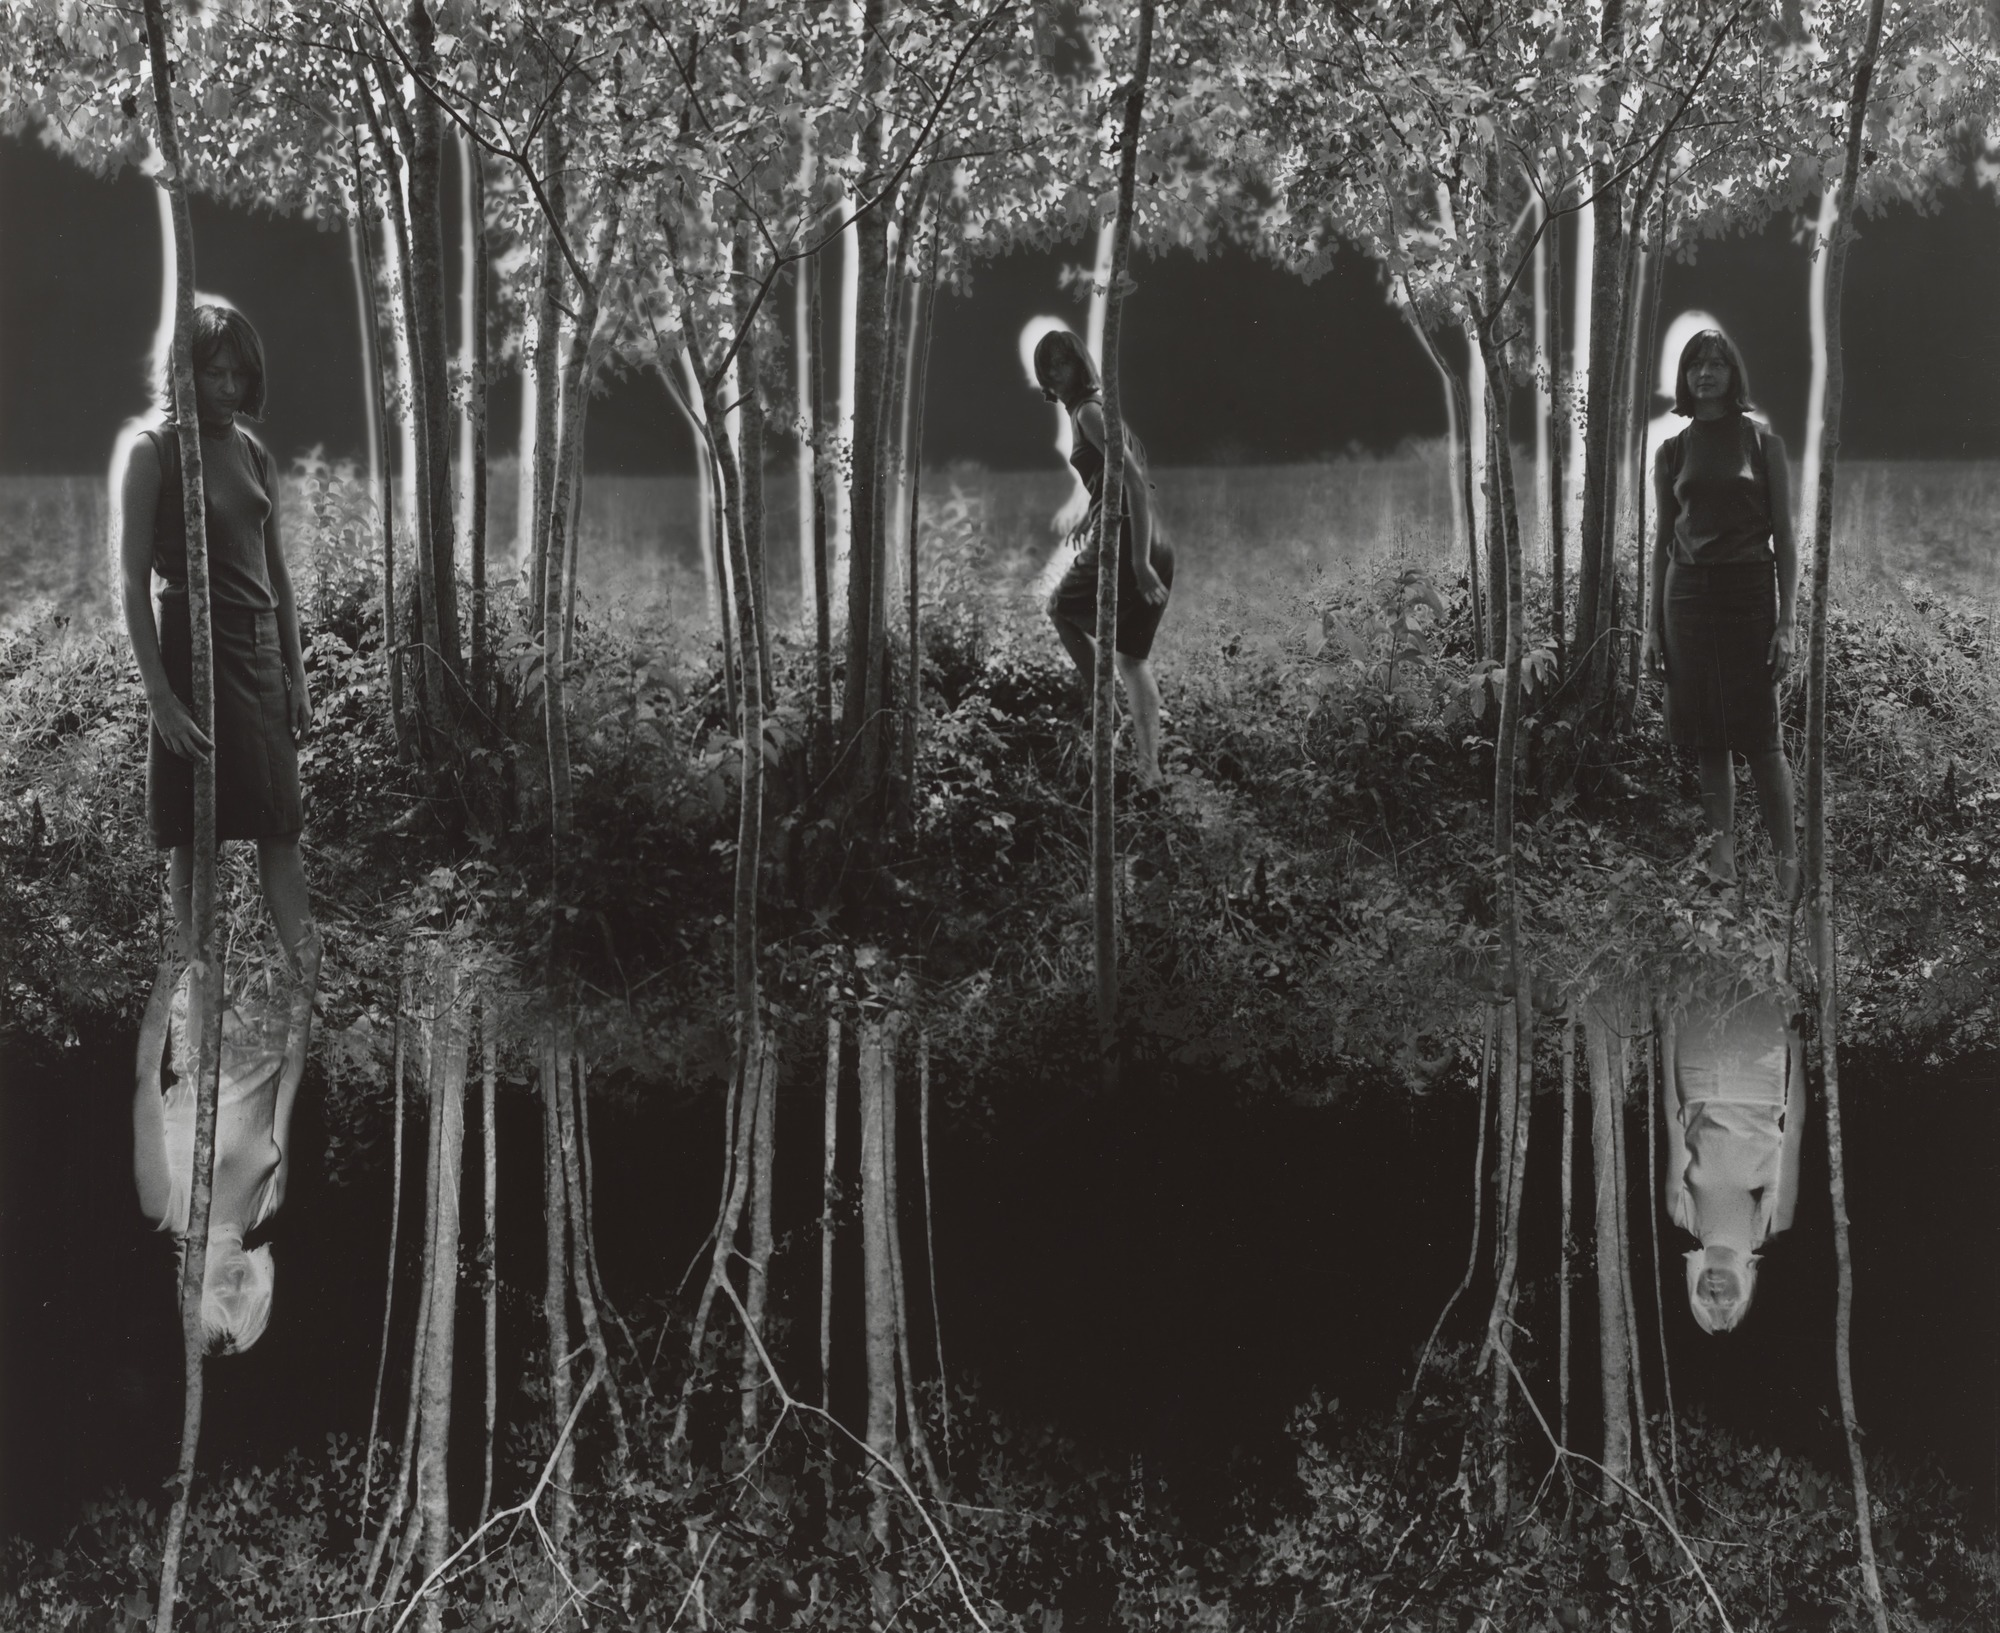 Jerry Uelsmann. Small Woods Where I Met Myself. 1967   MoMA